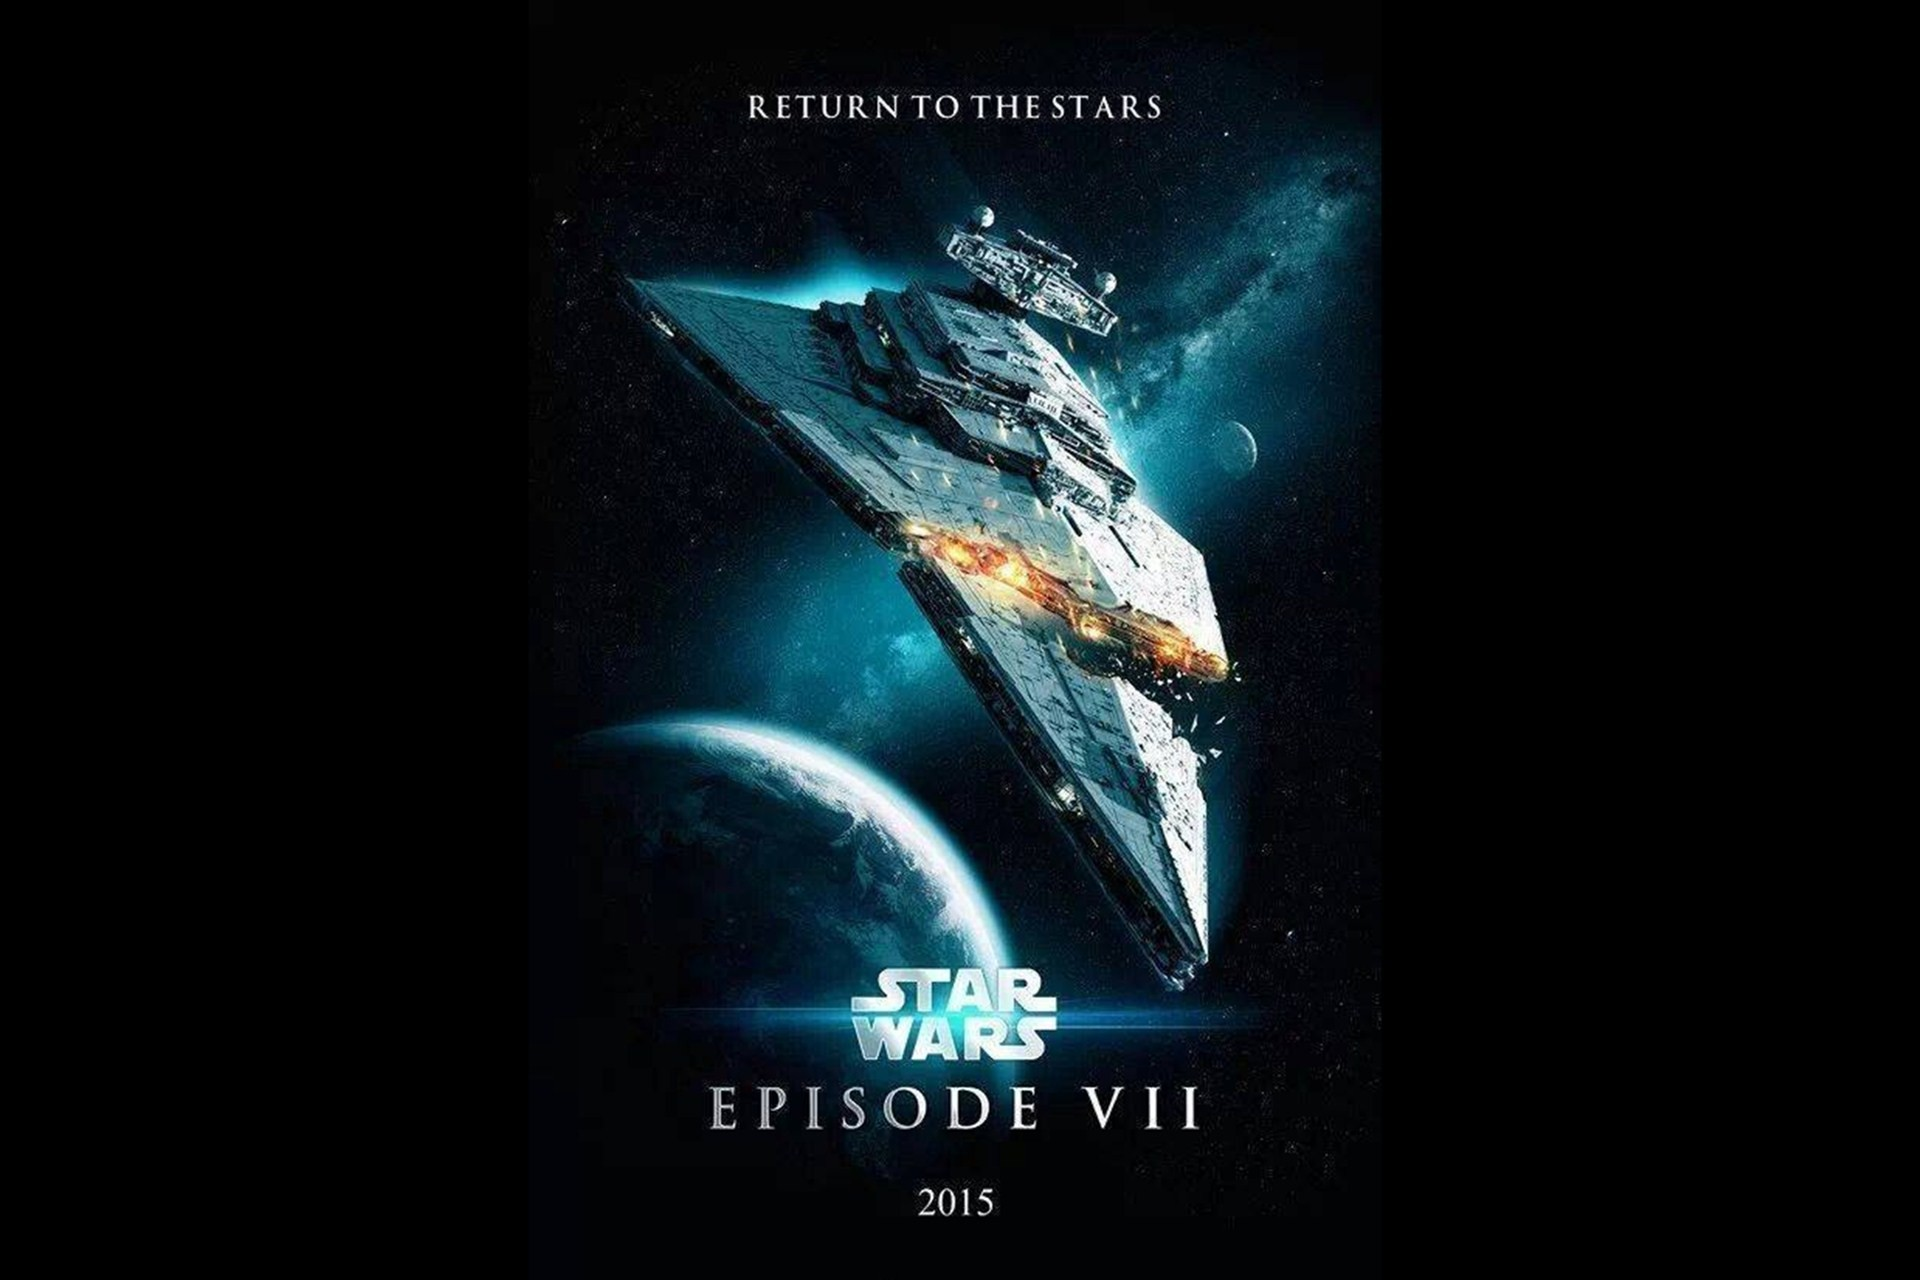 Star Wars The Force Awakens Wallpapers High Quality | Download Free